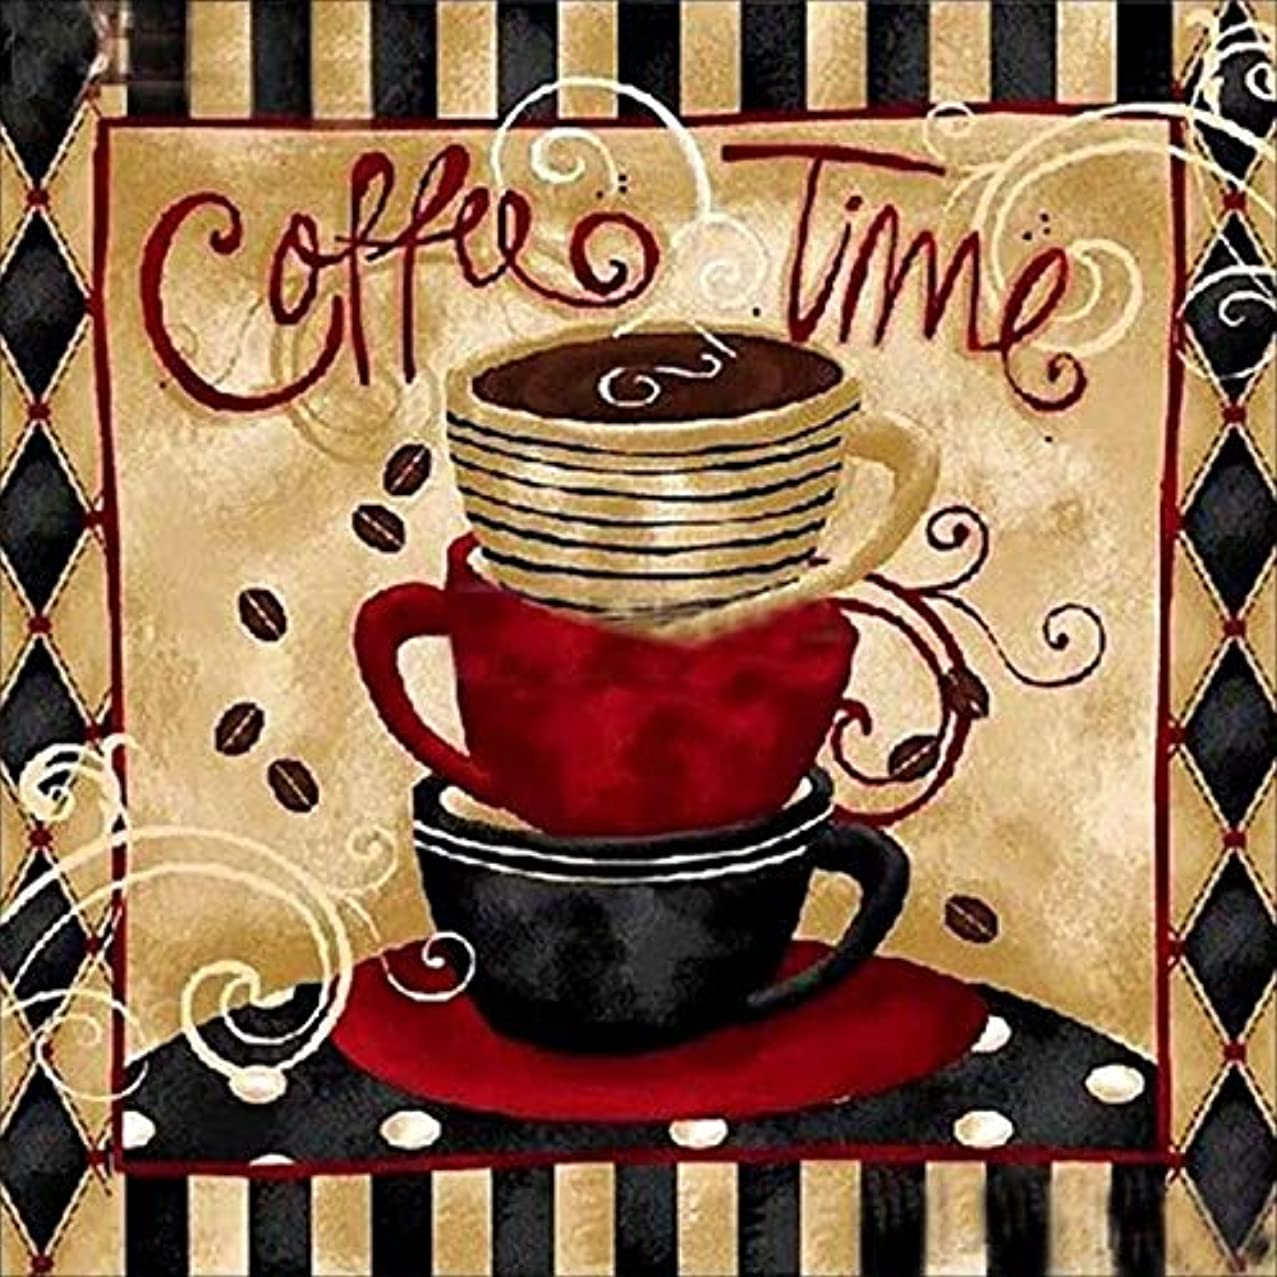 Full Drill Diamond Painting Coffee Time by Number Kits,5D DIY Diamond Embroidery Crystal Rhinestone Cross Stitch Mosaic Paintings Arts Craft for Home Wall Decor (50X50CM)